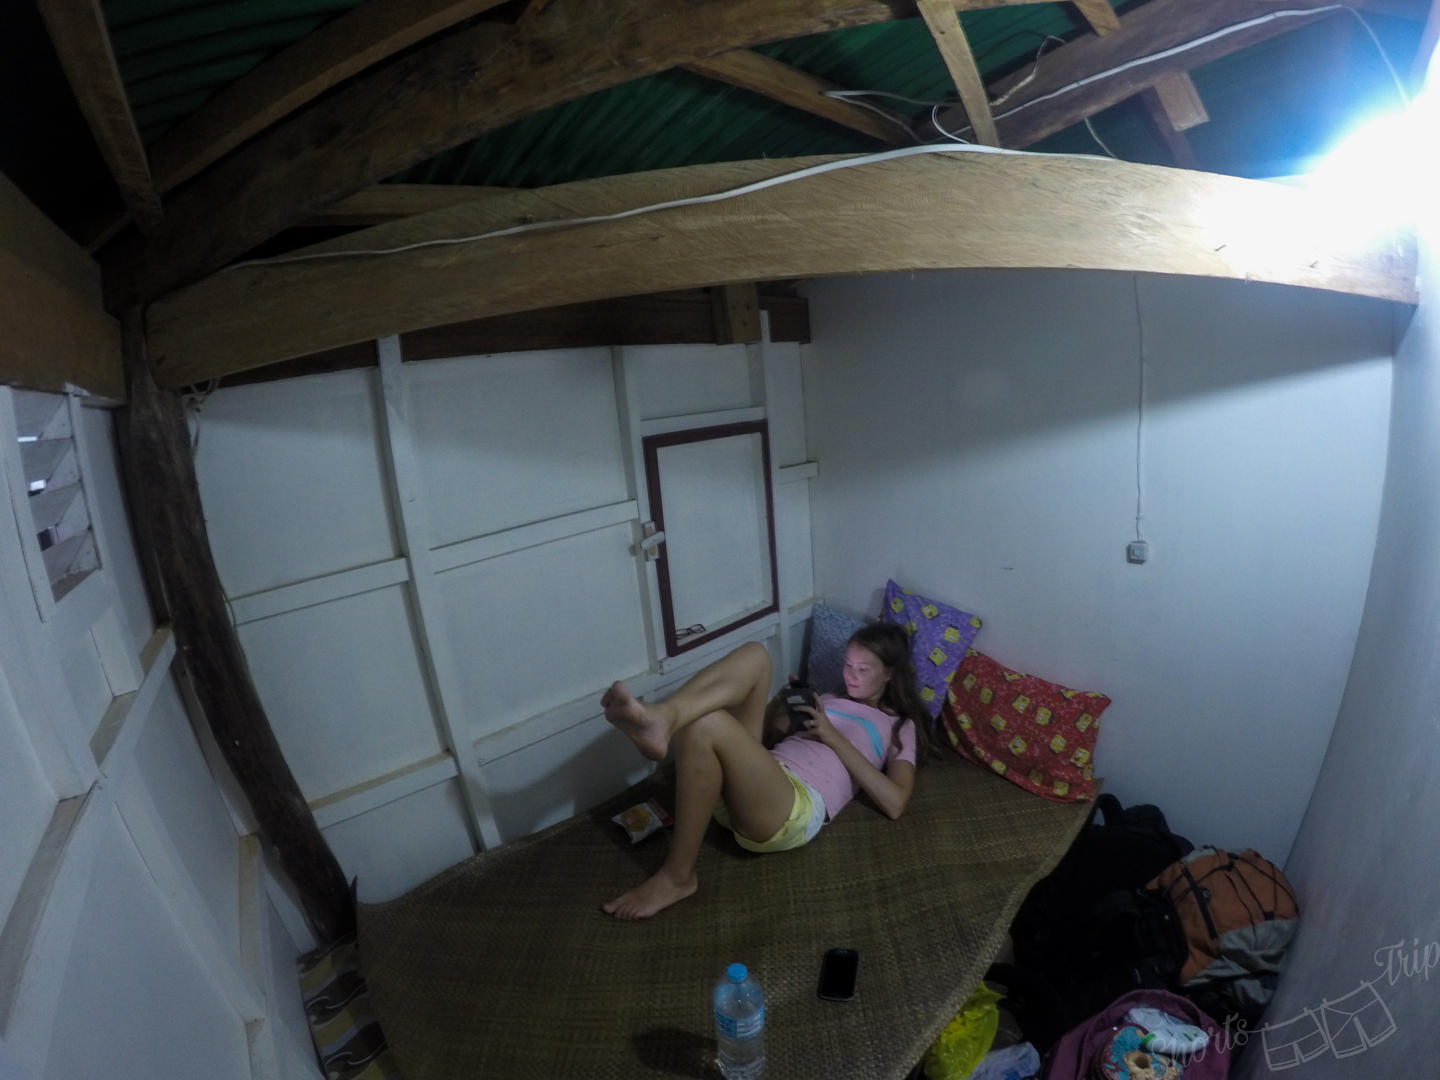 libertad port room, cheapest room in SEA, must know before heading to Philippines